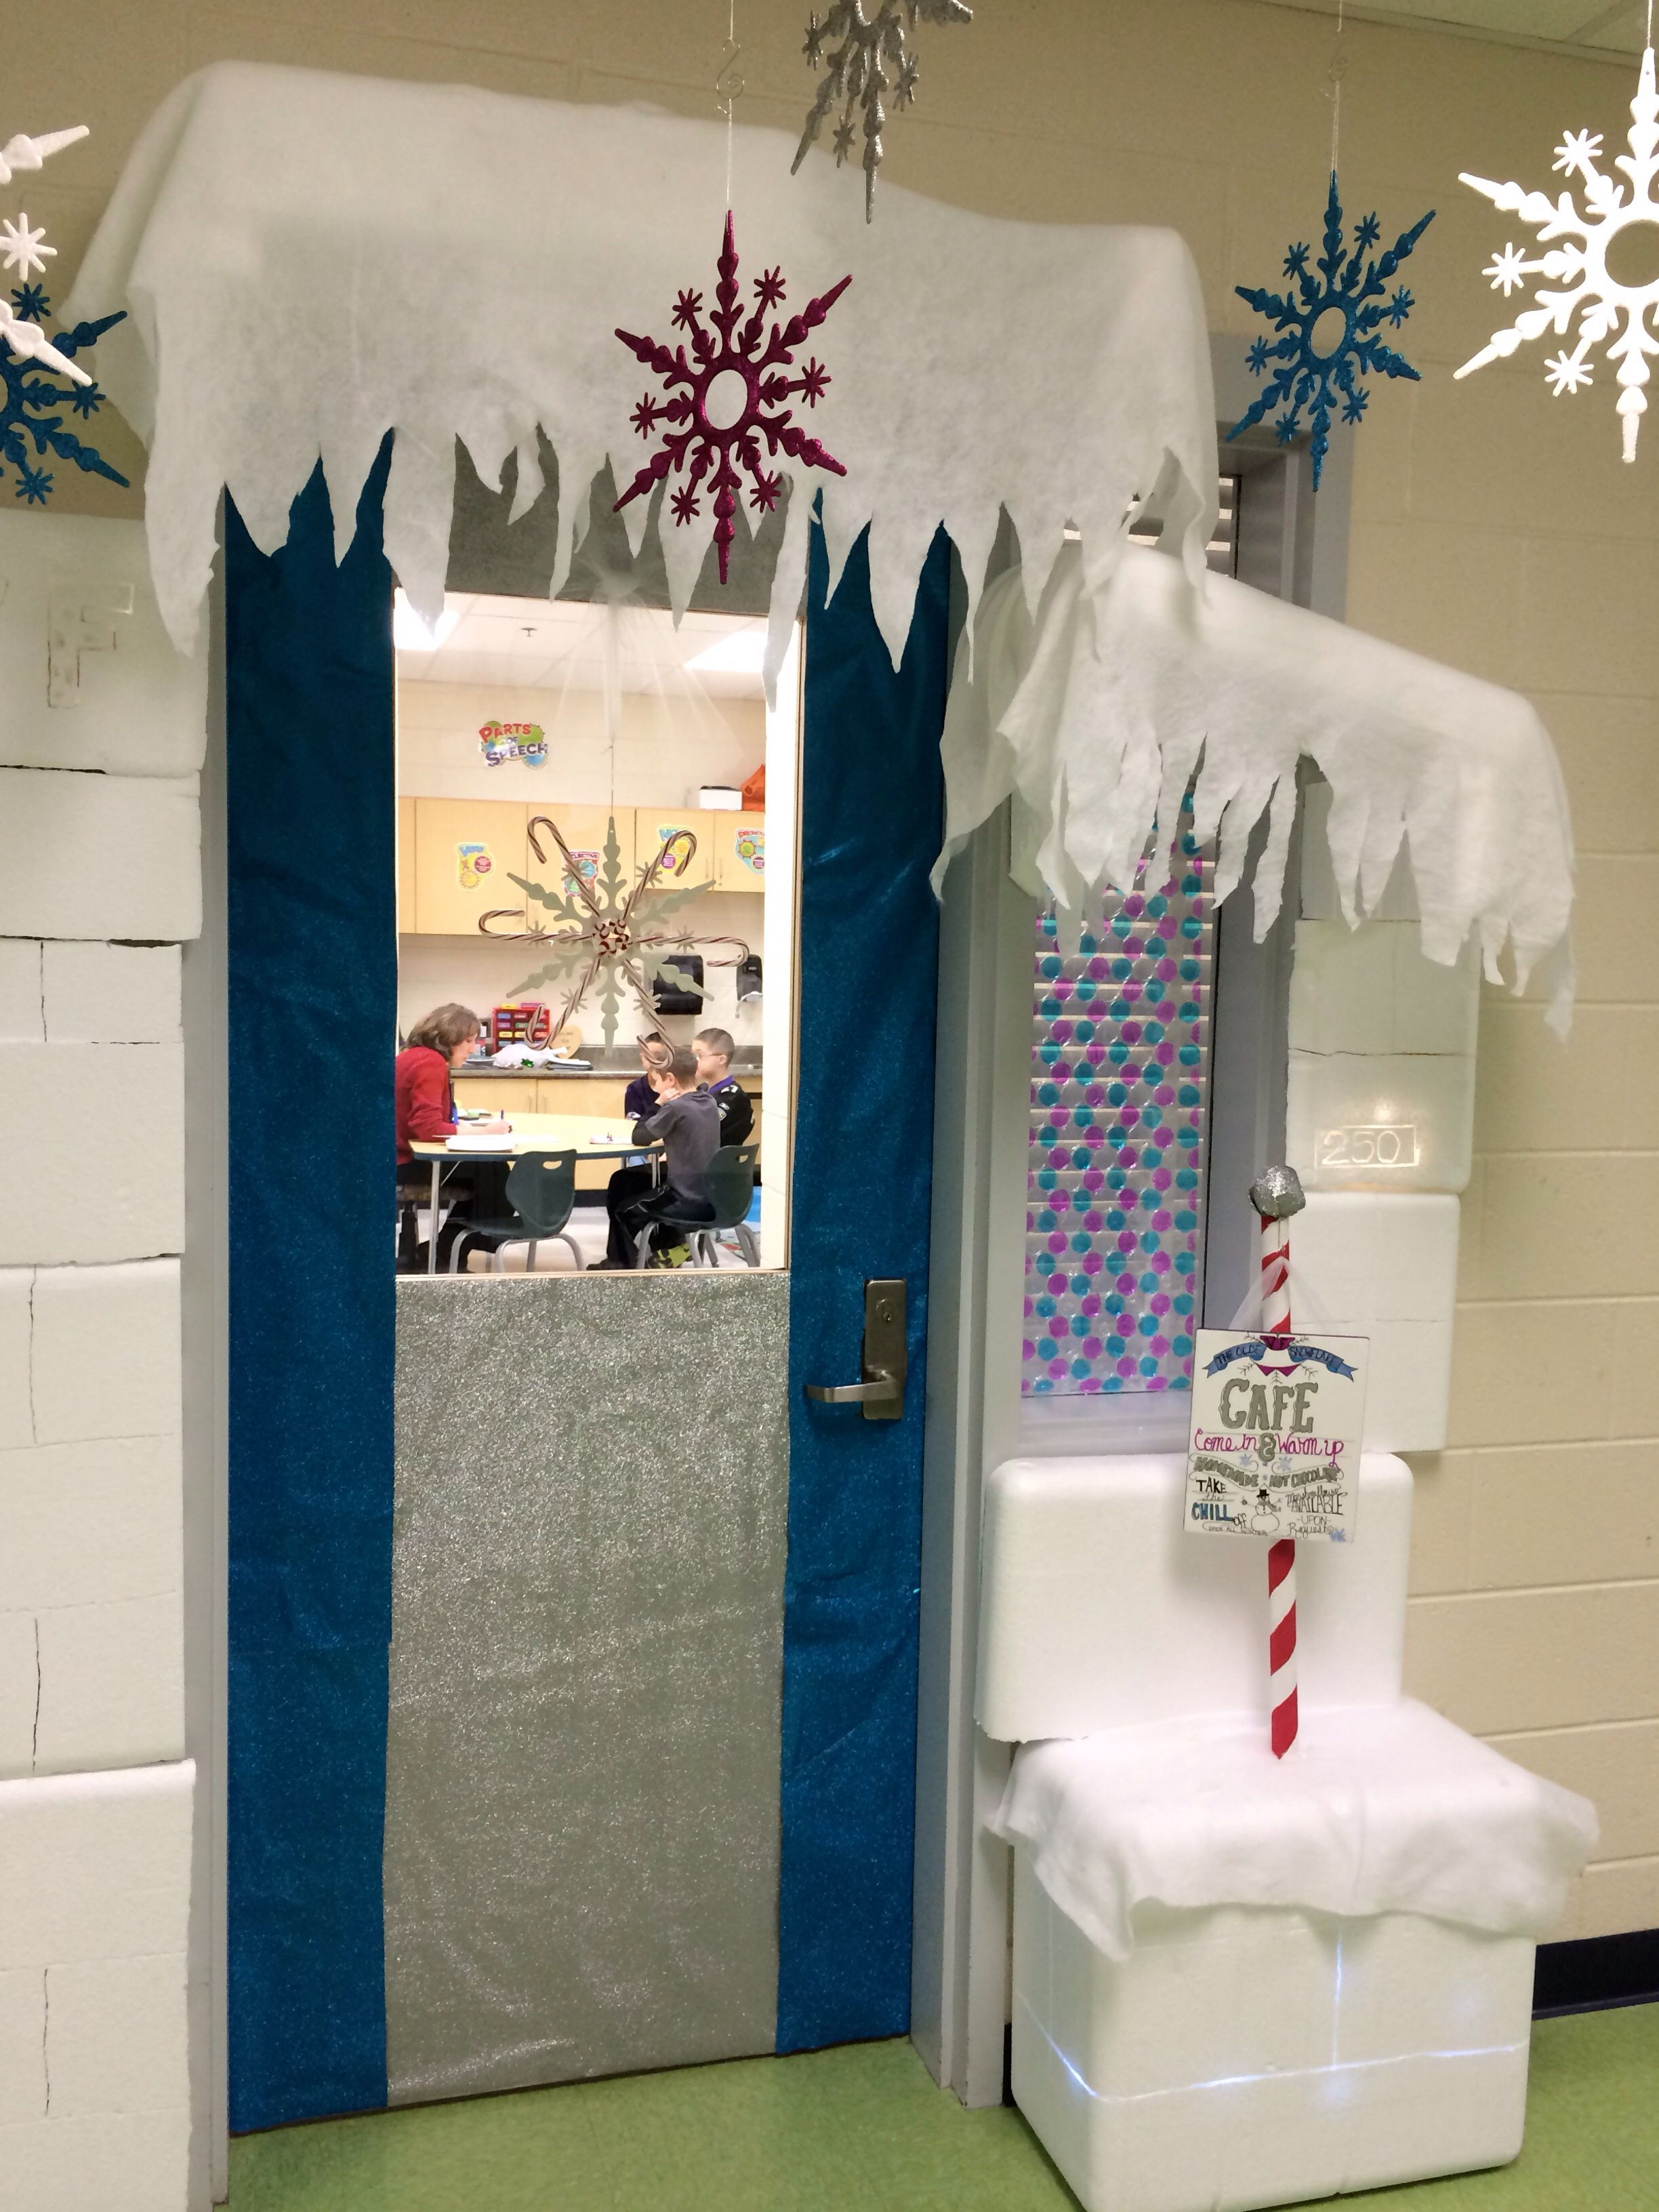 Classroom Winter Decor ~ My winter wonderland classroom door ran over to the speech